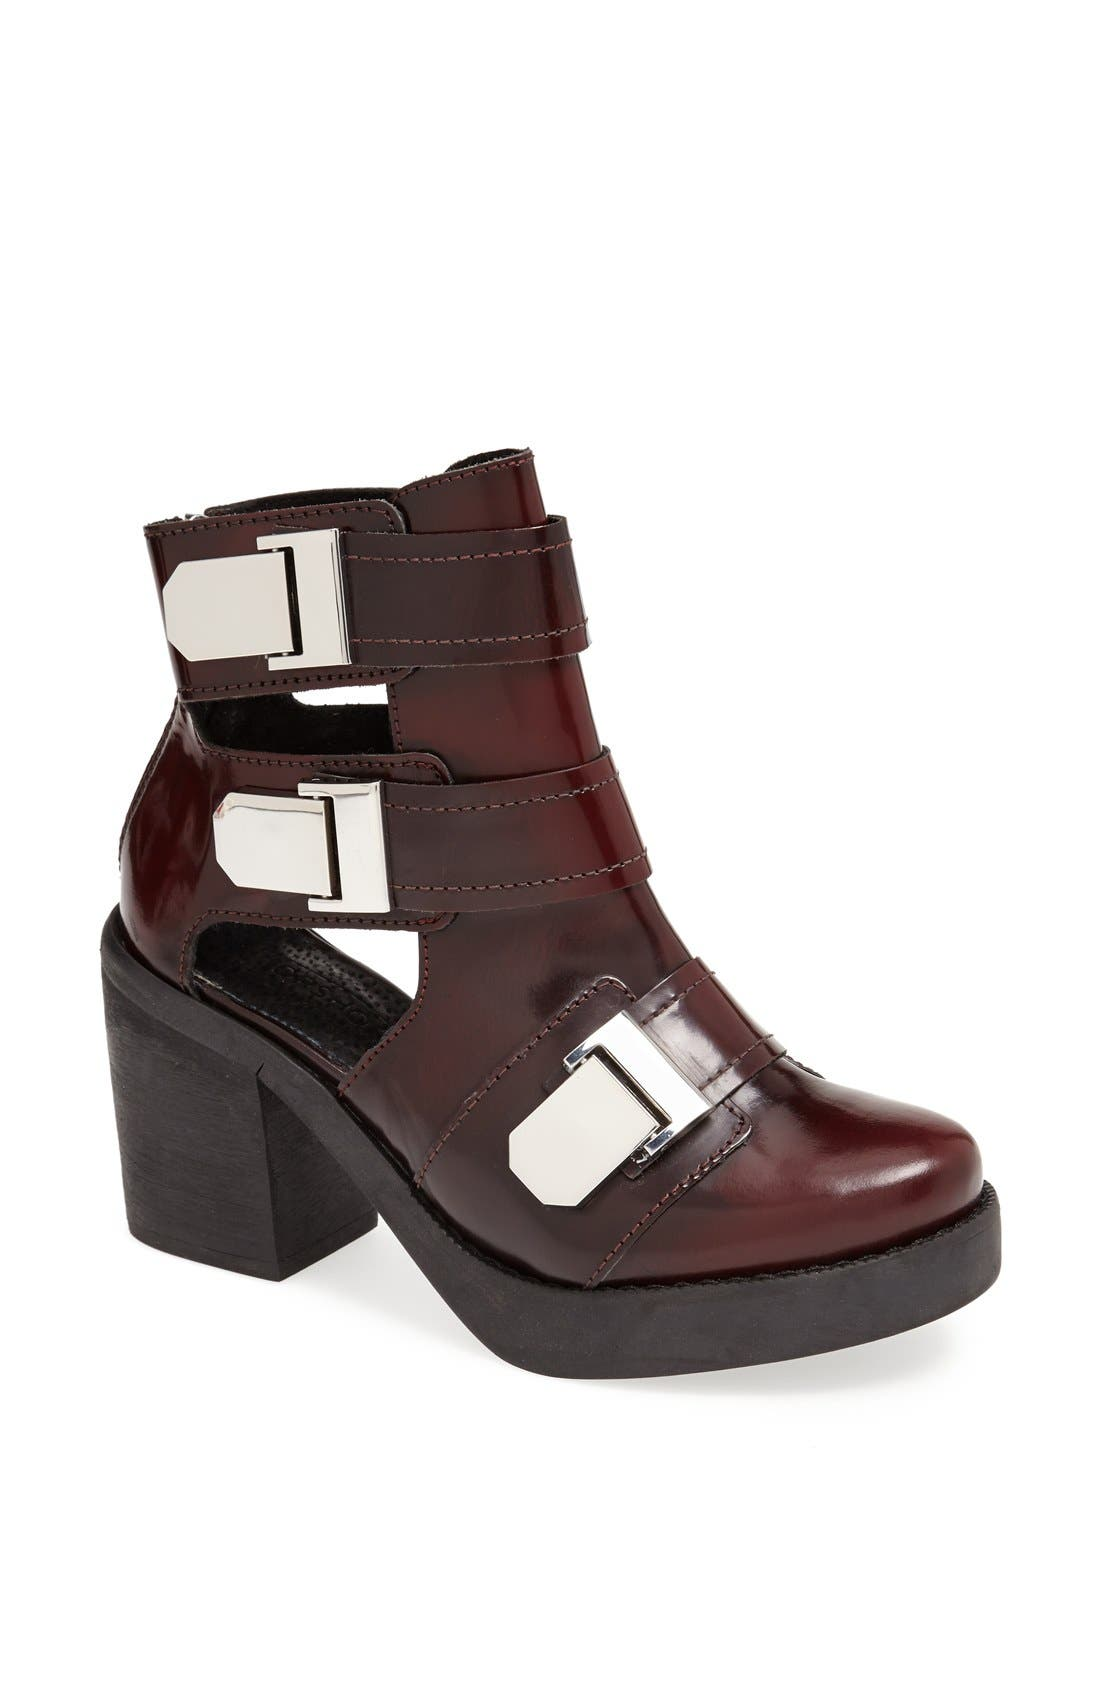 Alternate Image 1 Selected - Topshop 'Aubrey' Boot